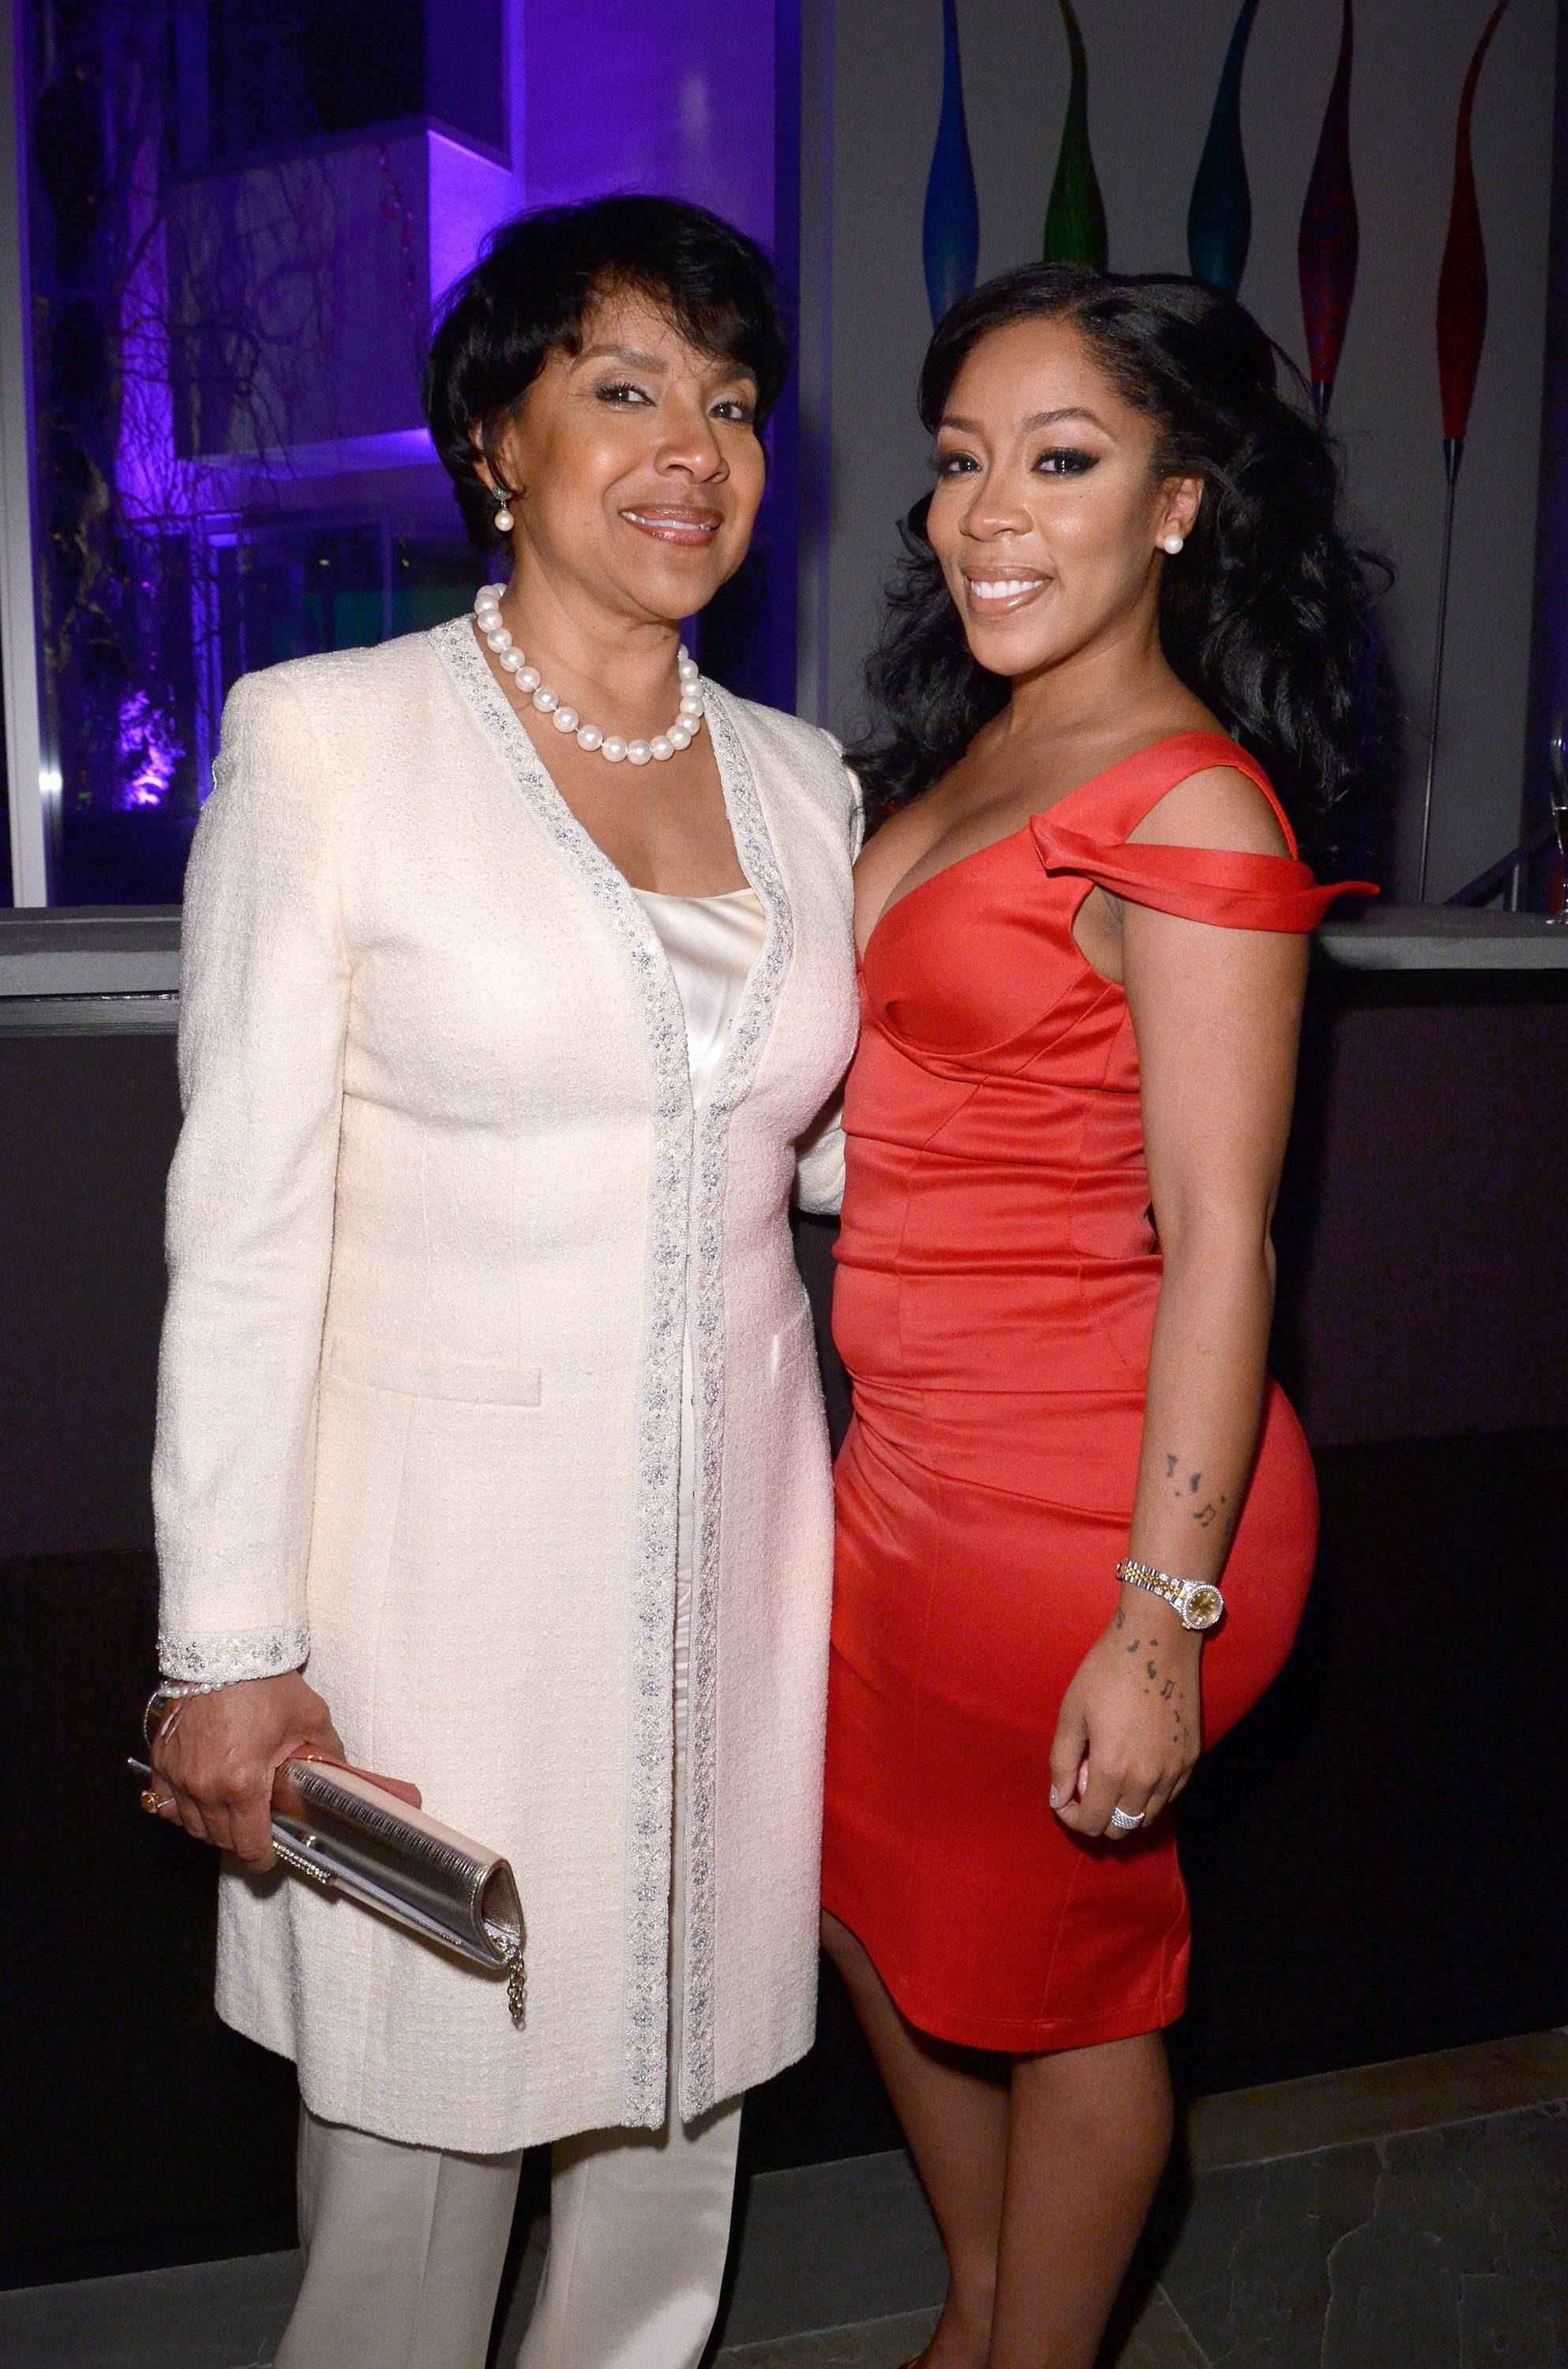 More Extraordinary - Theatrical Arts honoree and performer K. Michelle catch up during the the Debra Lee PRE-dinner.(Photo: Kris Connor/BET/Getty Images for BET)